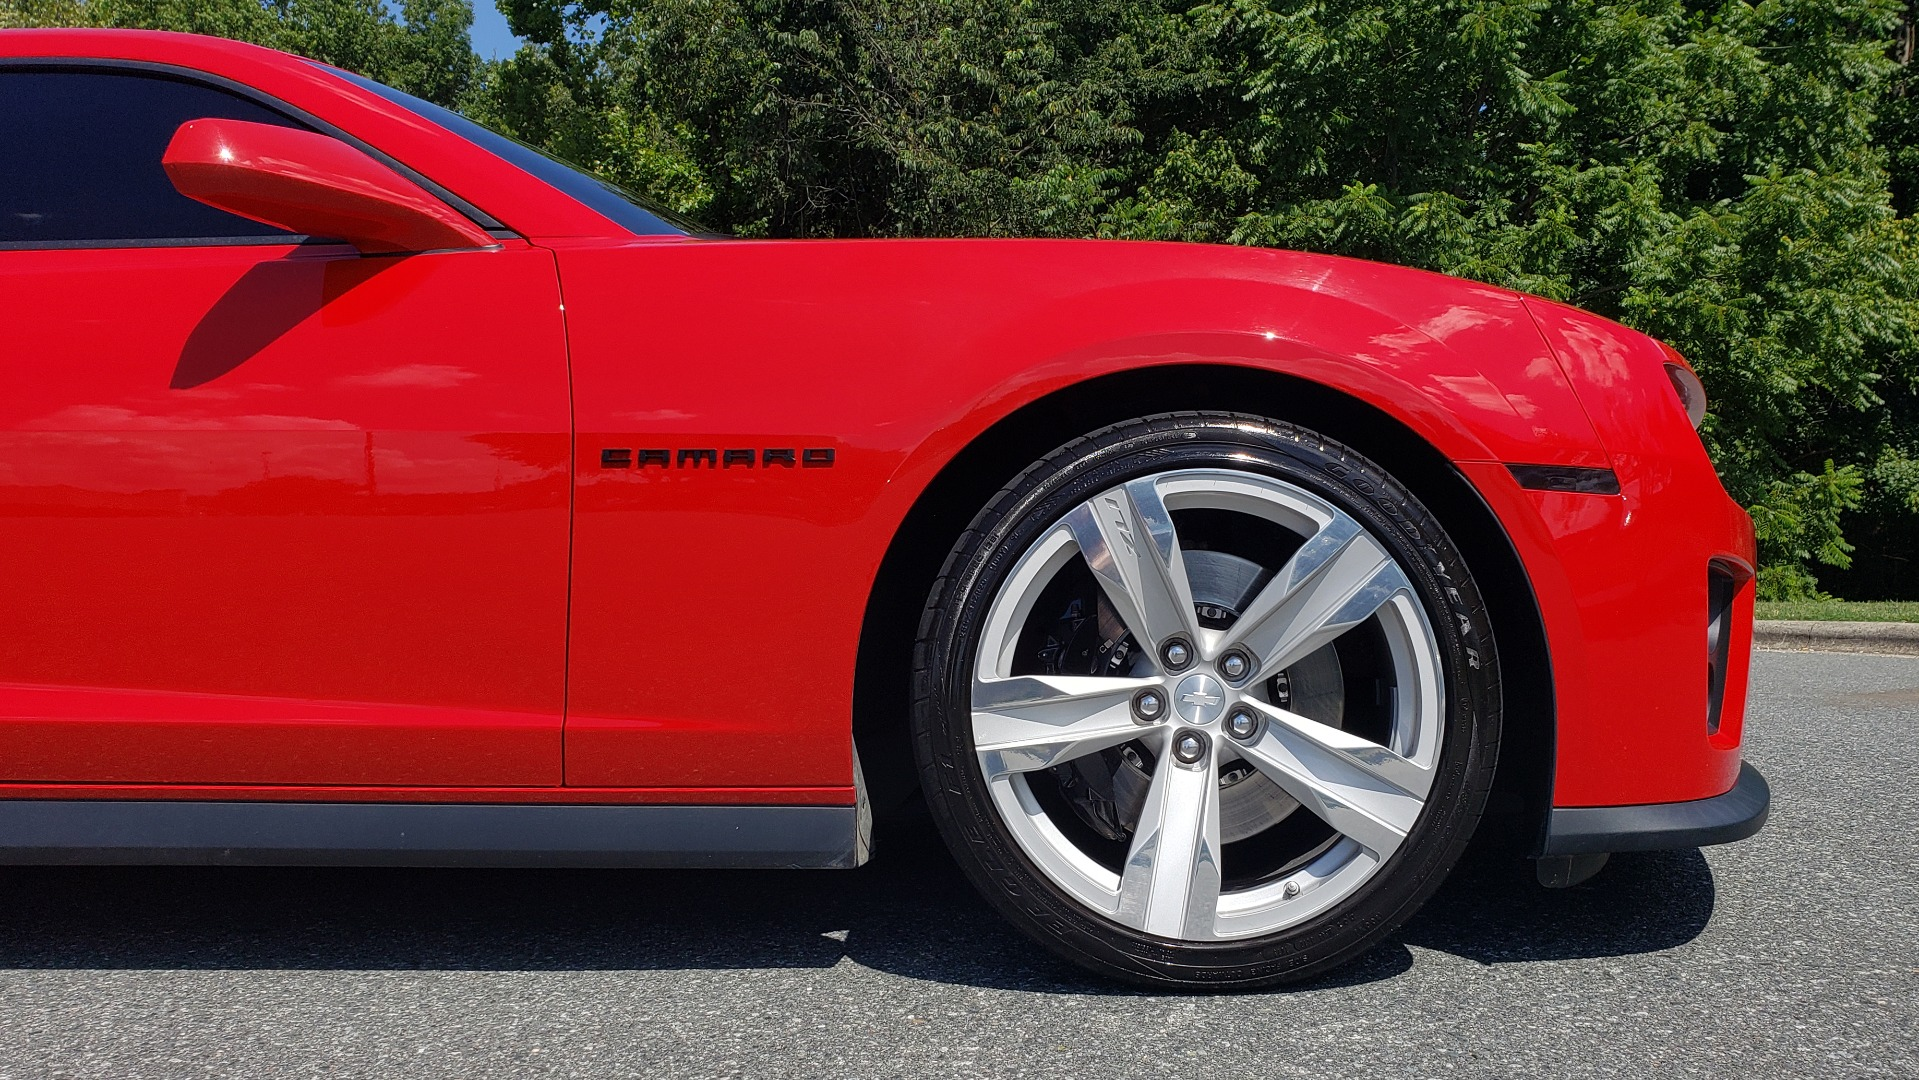 Used 2013 Chevrolet CAMARO ZL1 580HP / AUTO / NAV / BOSTON ACOUSTIC SND / REARVIEW for sale $40,995 at Formula Imports in Charlotte NC 28227 88